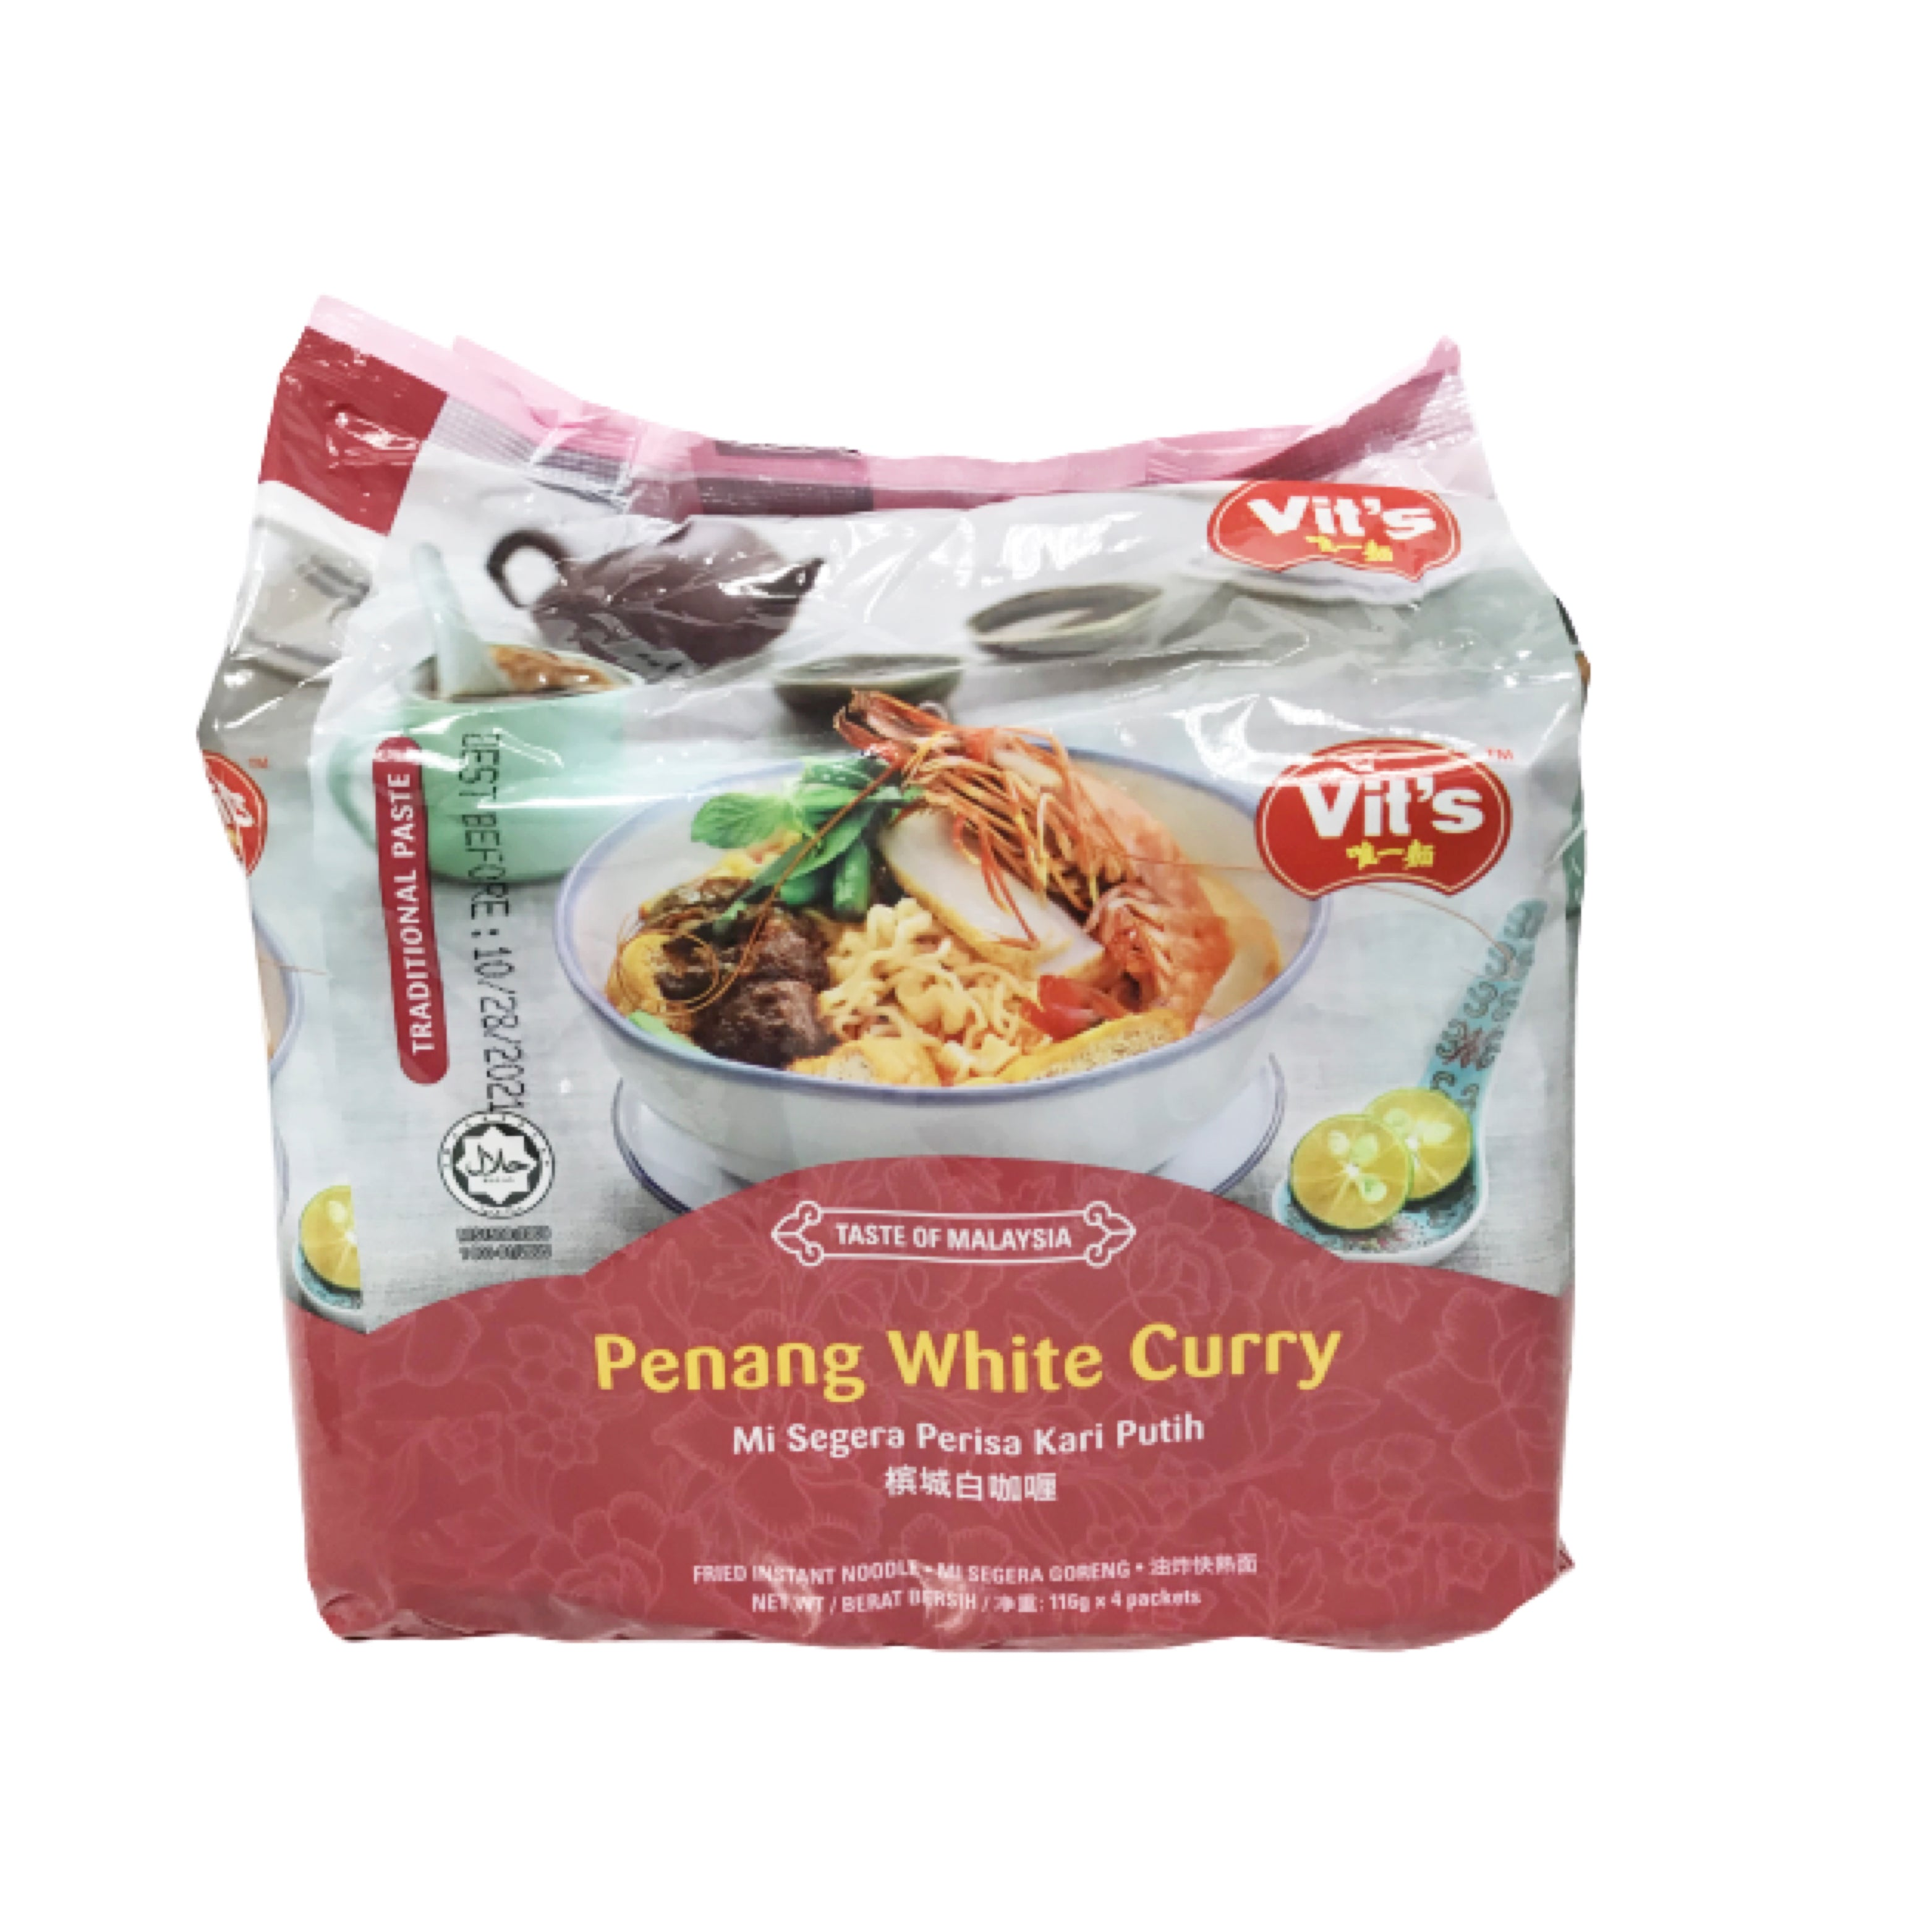 Vit's Penang White Curry Instant Noodle (4Packs)